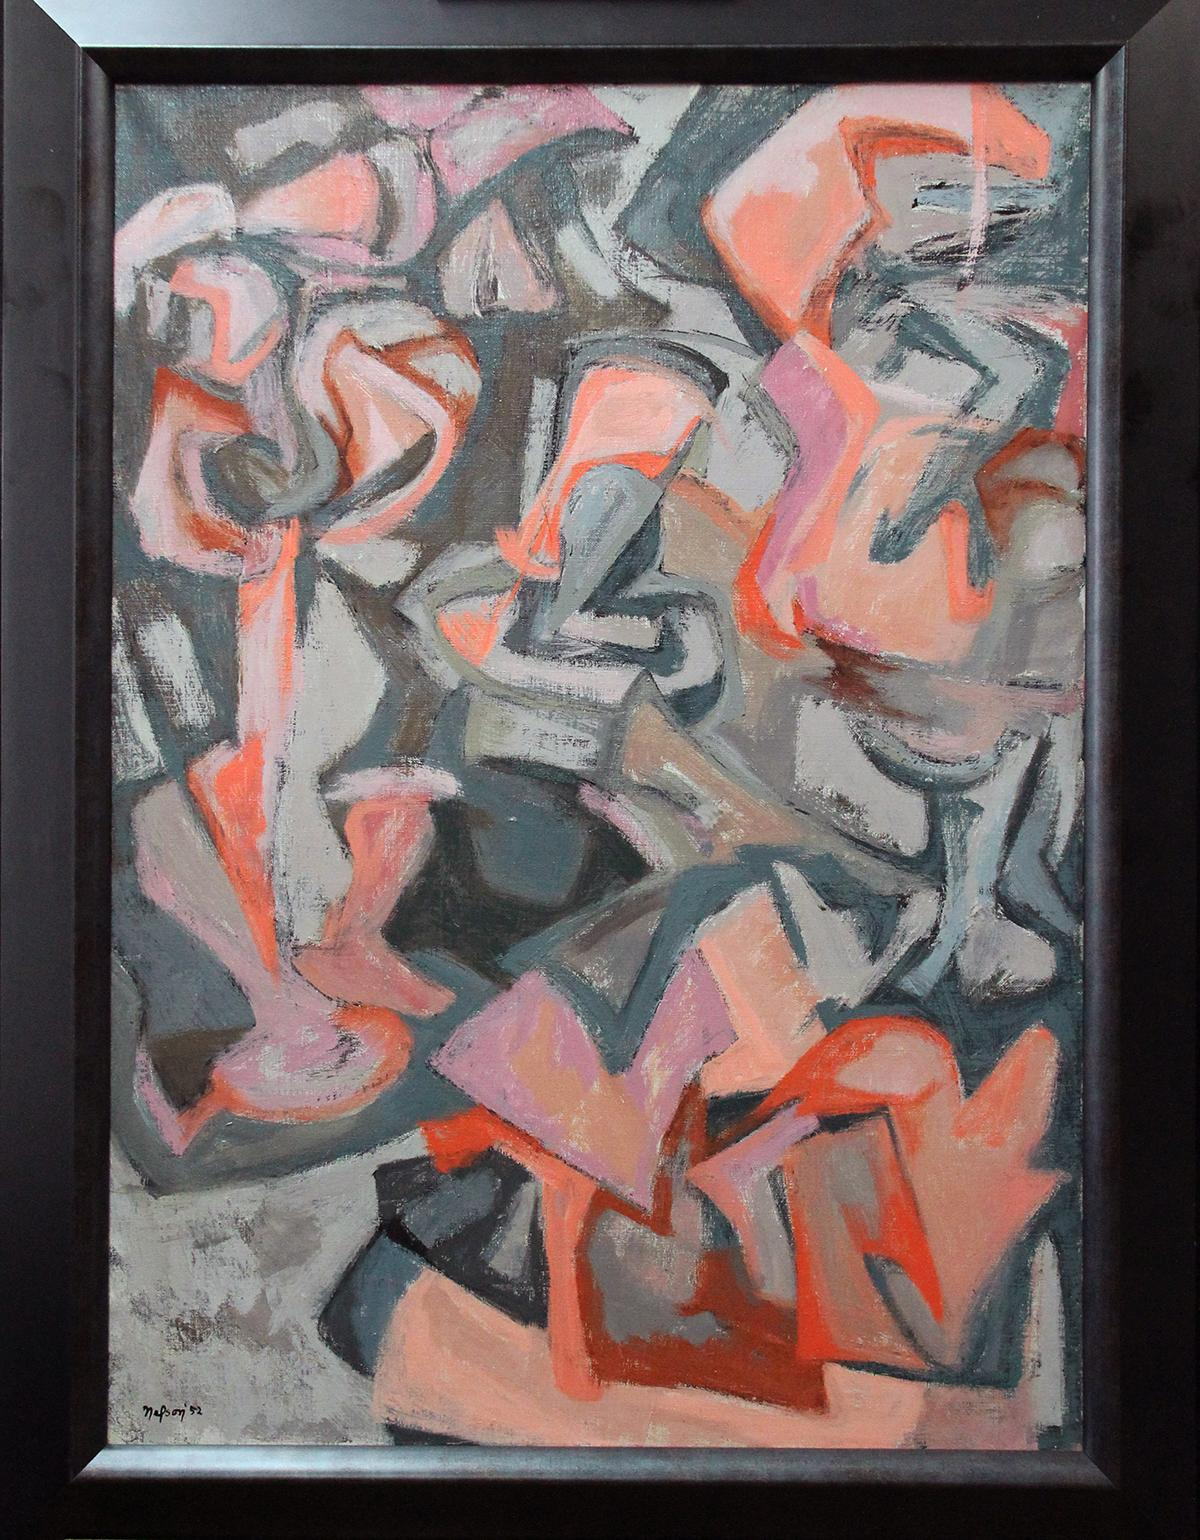 Les Competiteurs, American Modernist, Abstract Figurative Oil on Canvas, 1952